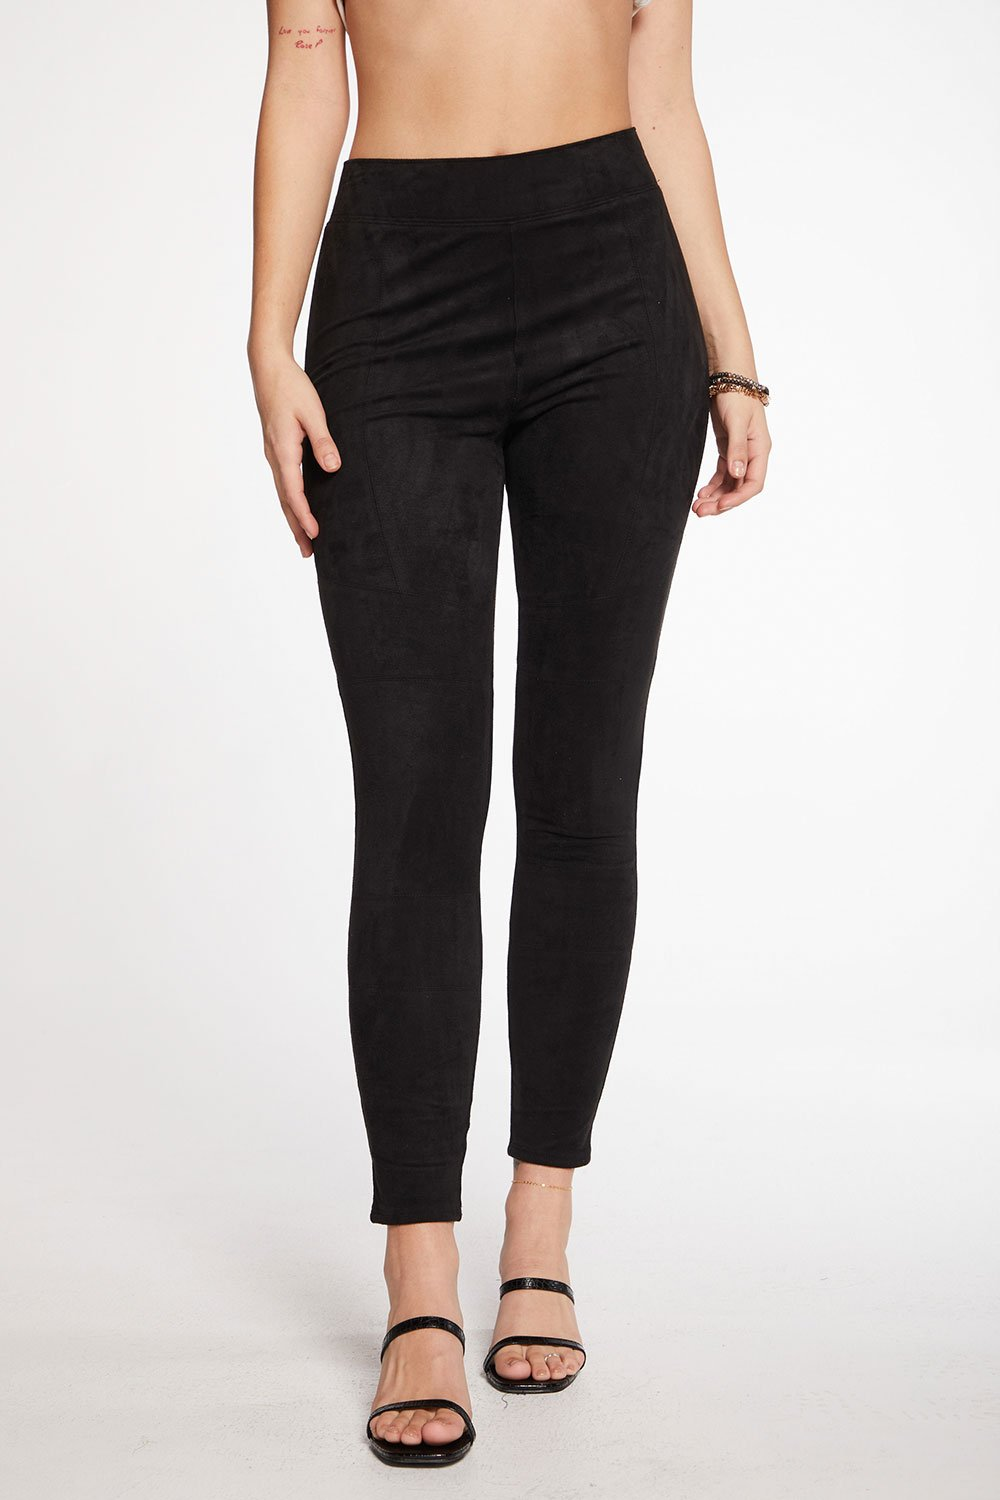 Chaser Stretch Faux Suede Leggings